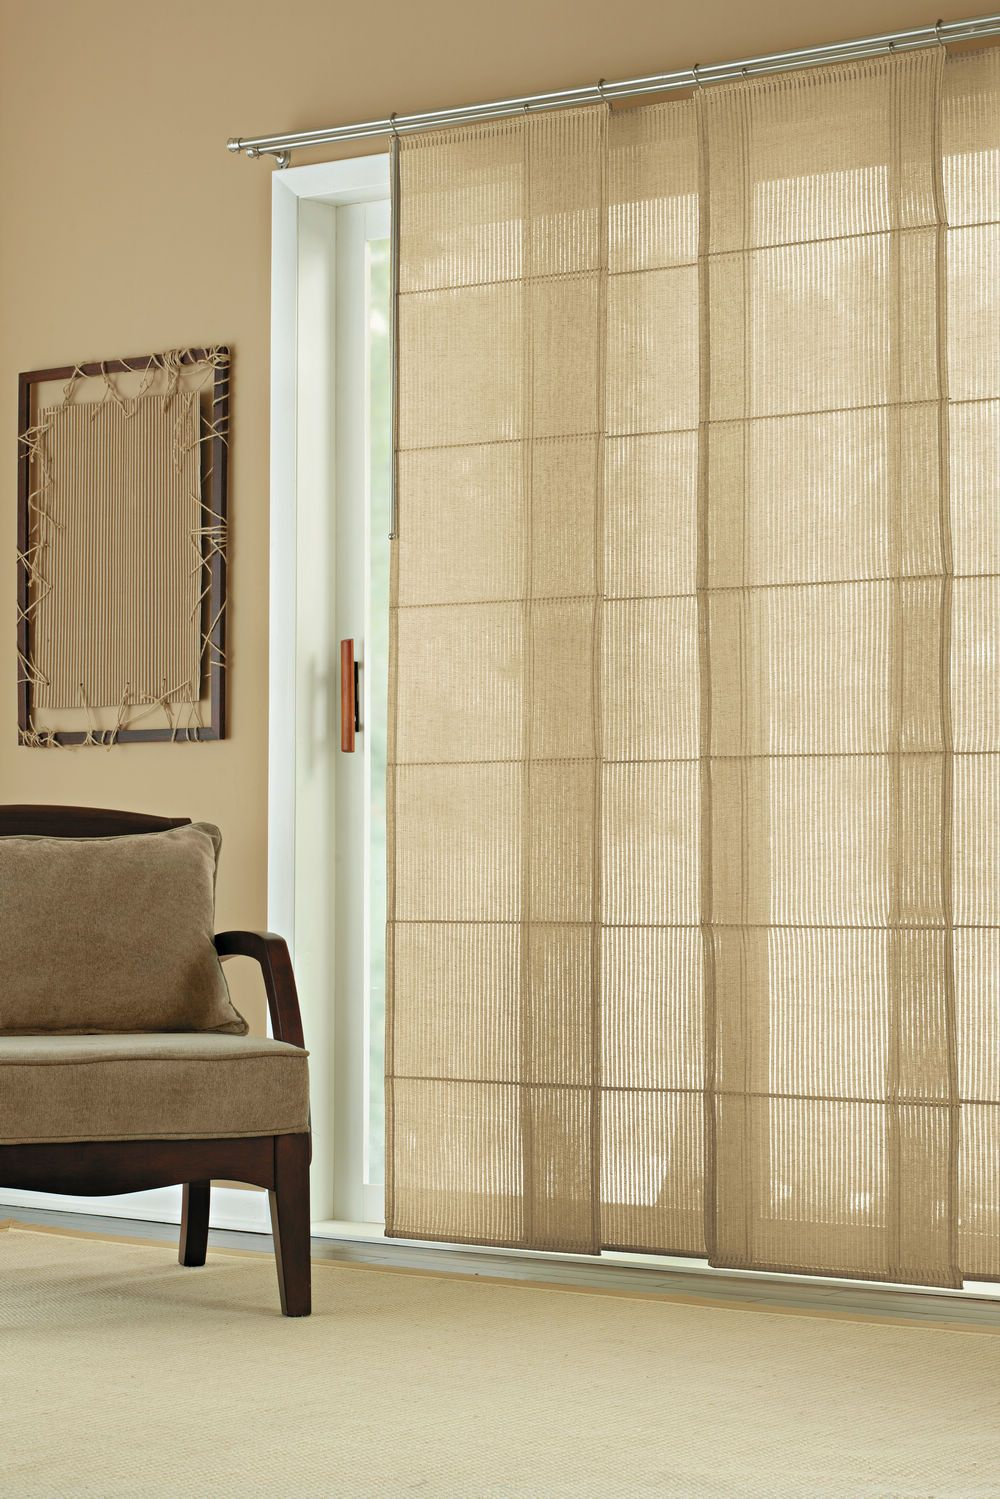 Di diy sliding curtain panels - Beautiful Inspiring Traditional Look Modern Vertical Sheer Sliding Panel Window Covering Ideas For Home Interior